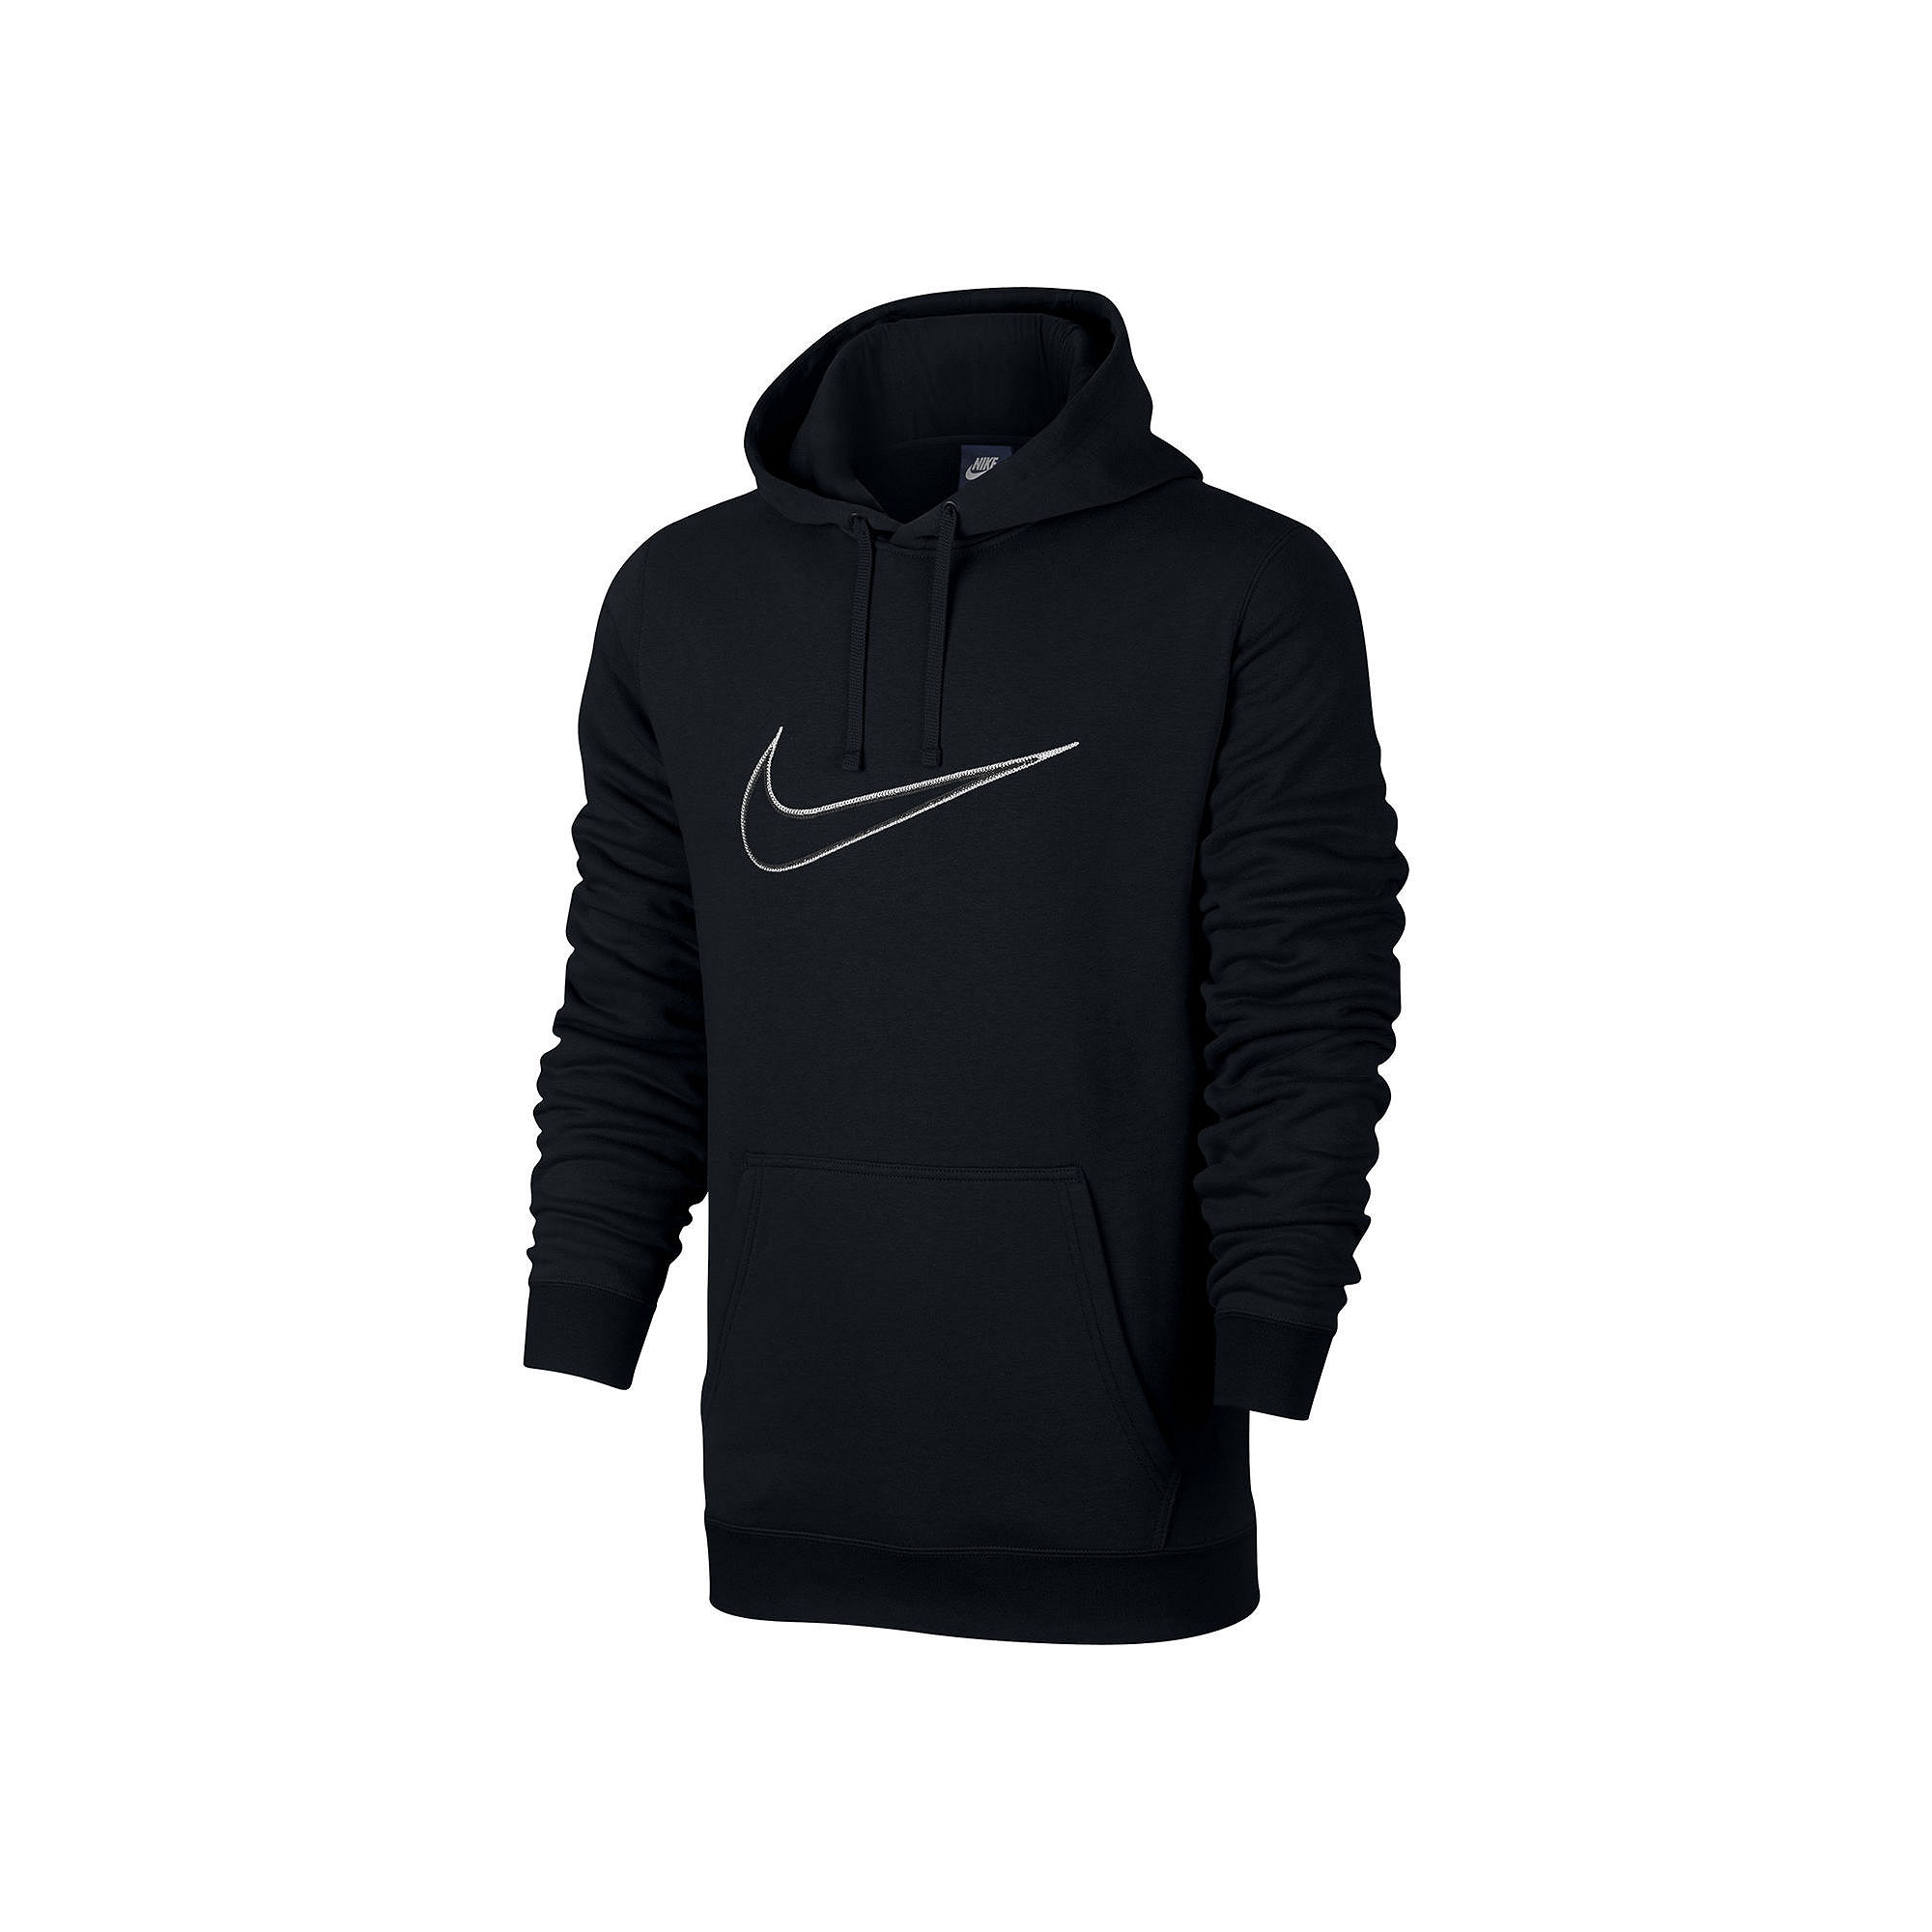 Nike Swoosh Swoosh Hoodie | Top, Sweatshirt and Clothing